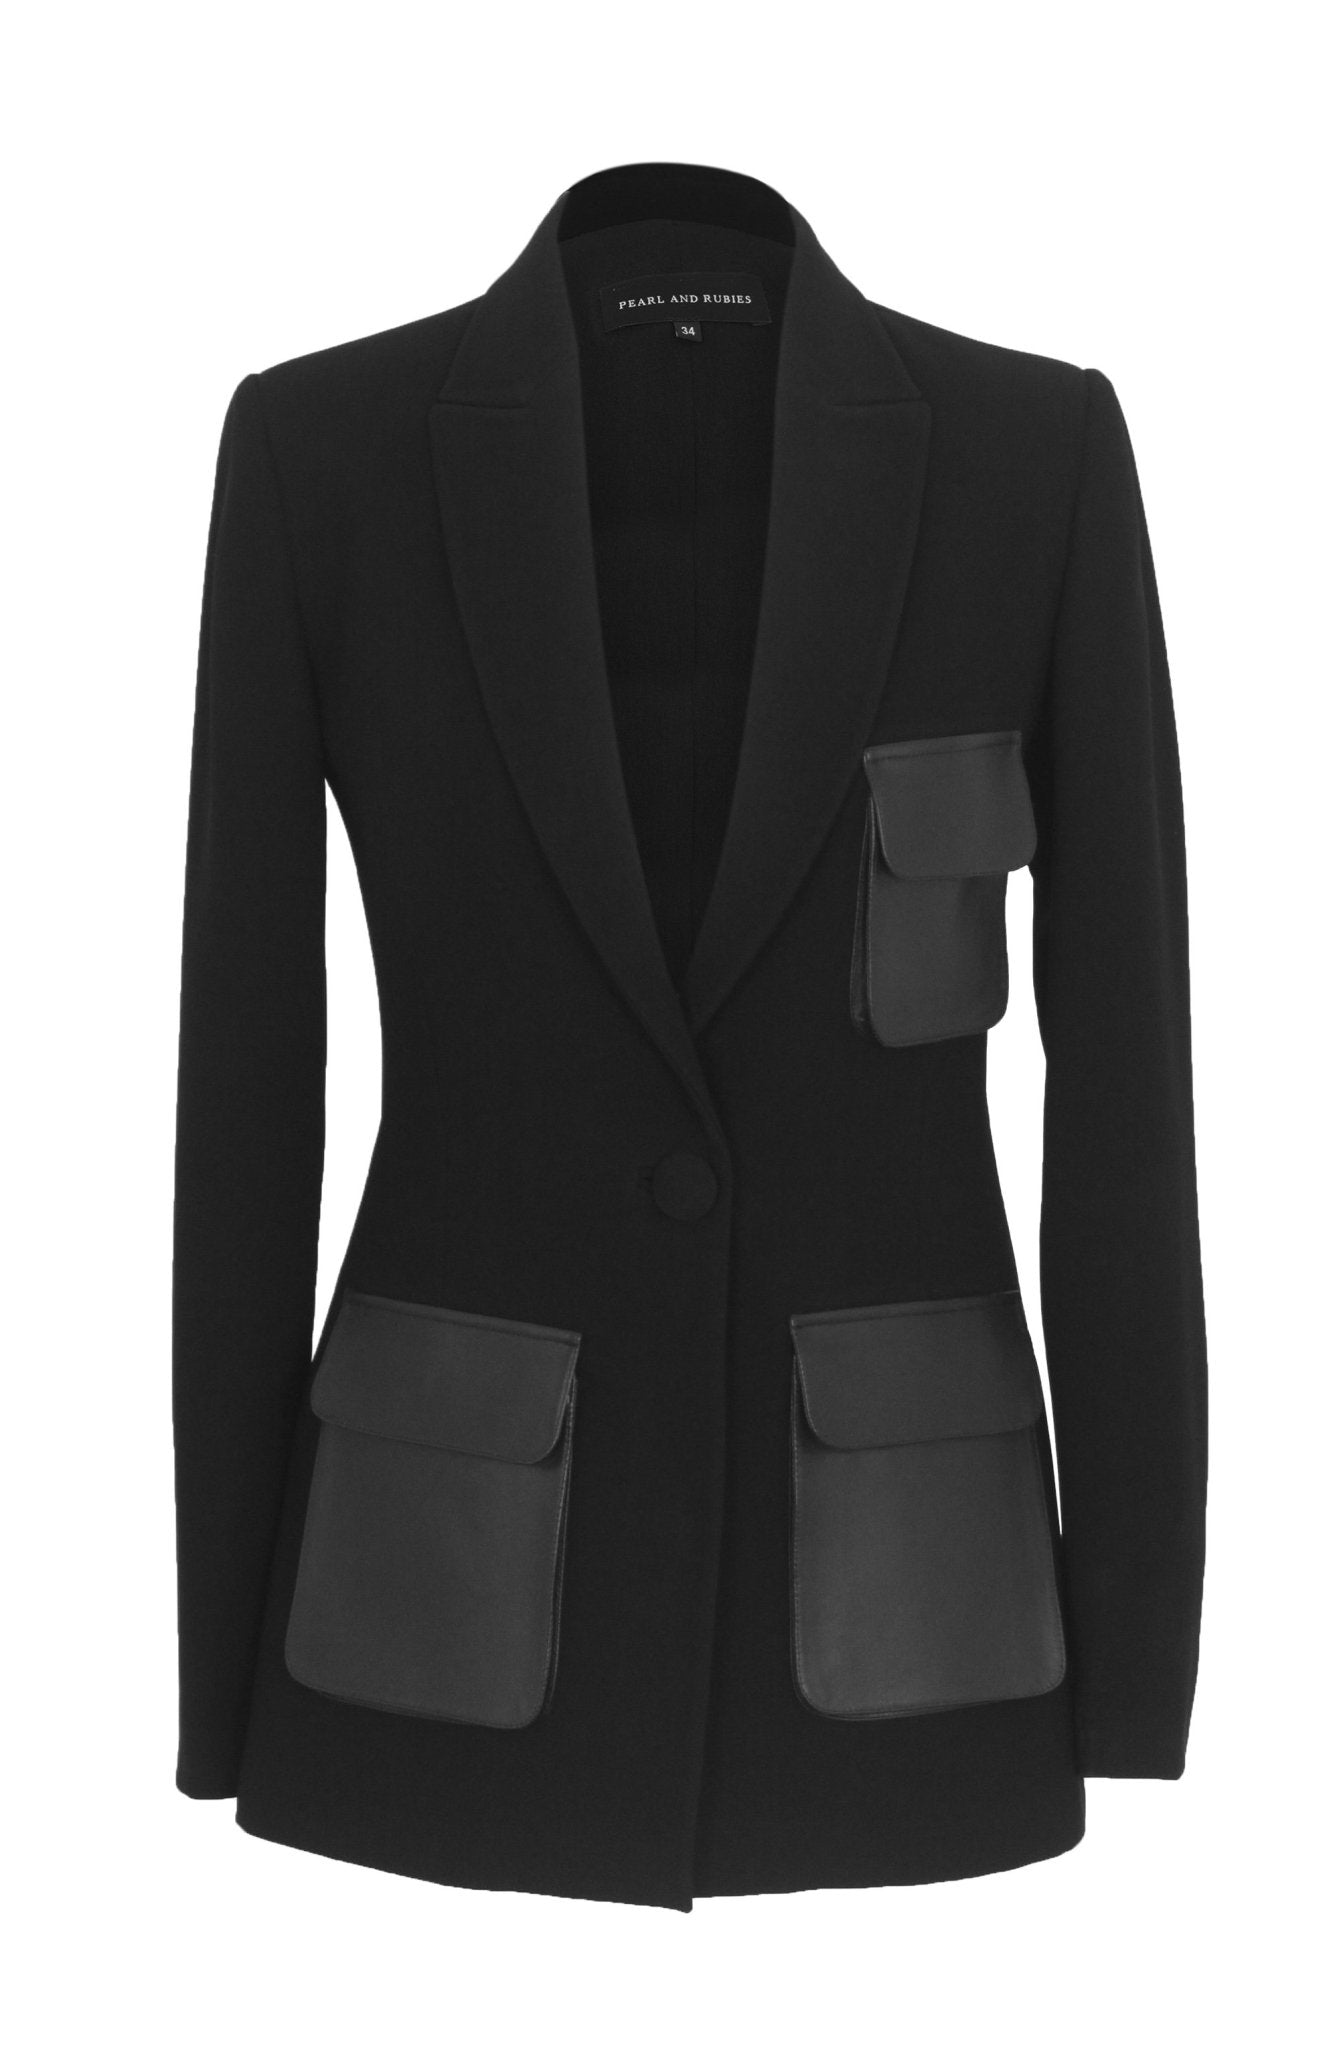 Crepe Blazer With Leather Utility Pockets - The Clothing LoungePEARL AND RUBIES